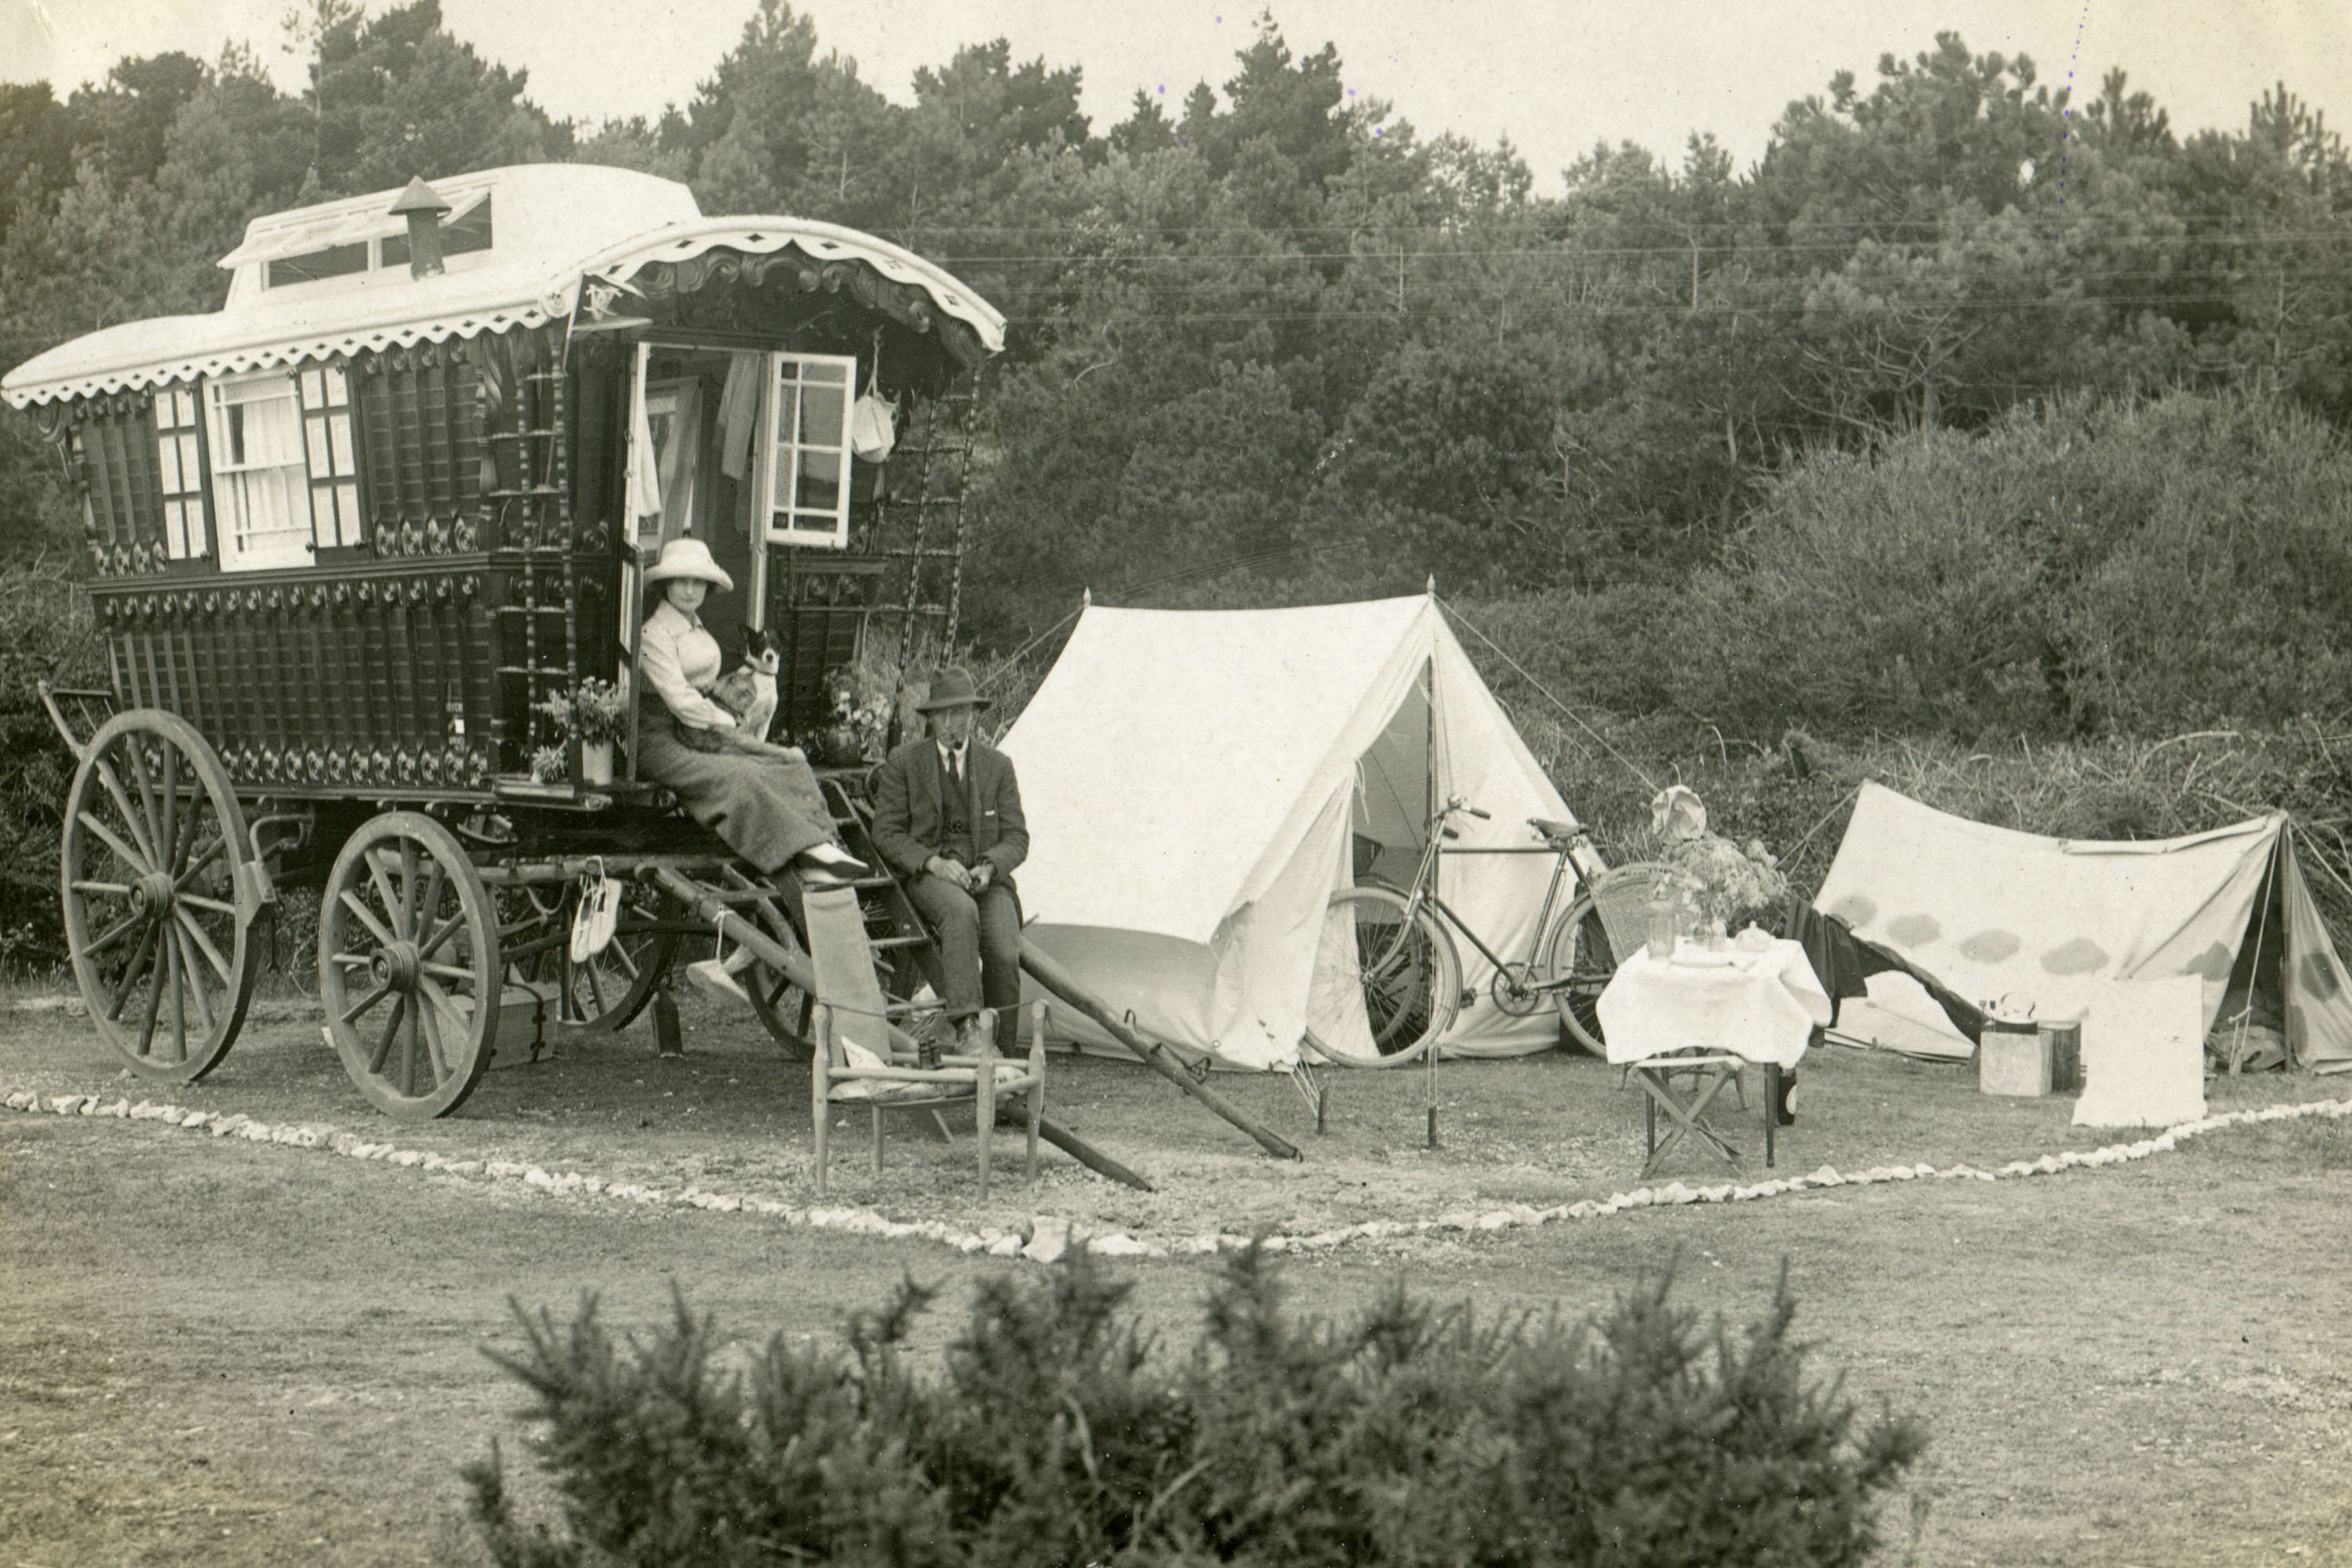 A camp comprising of a horse-drawn caravan and tents with man and woman